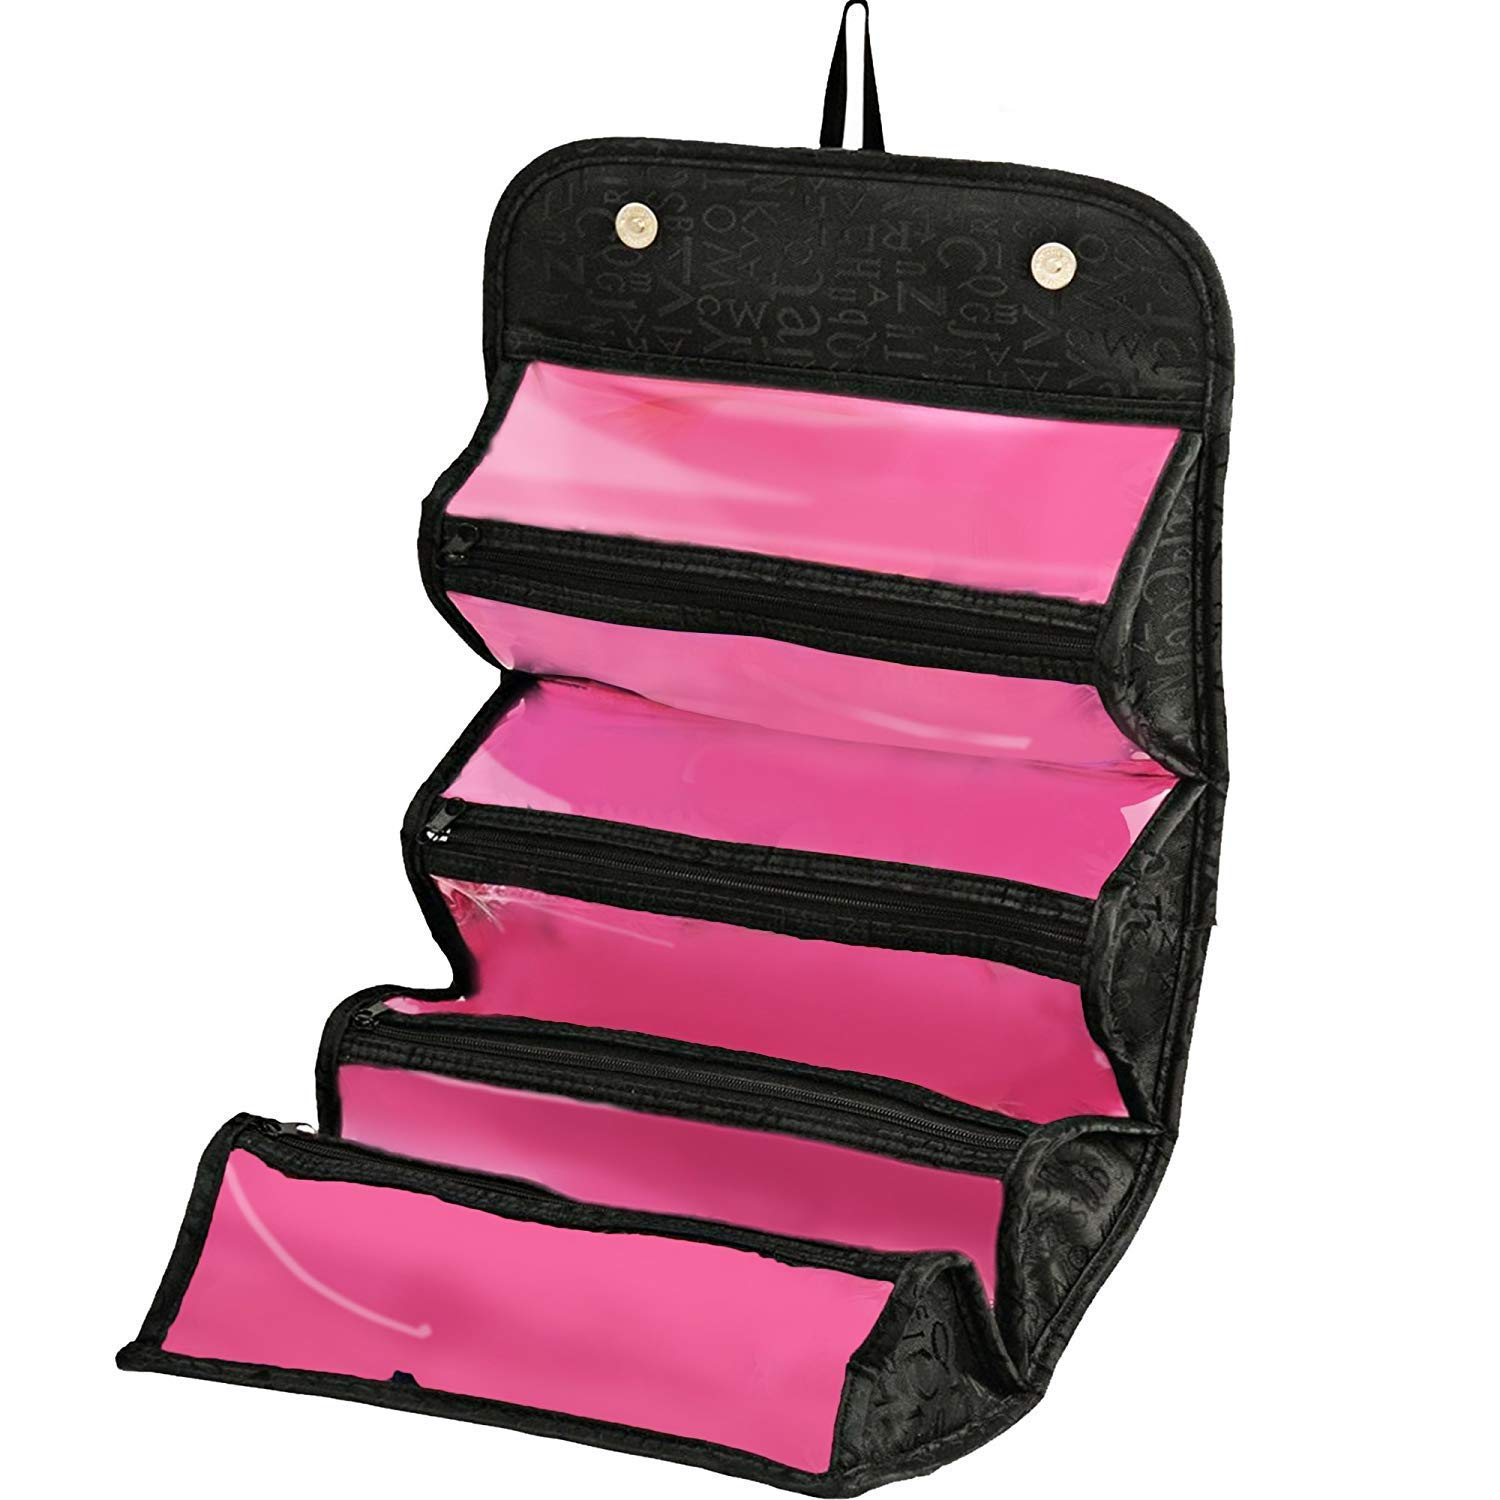 Roll Up Travel Cosmetic Makeup Jewelry Toiletry Bag Organizer Camping Accessories Holder